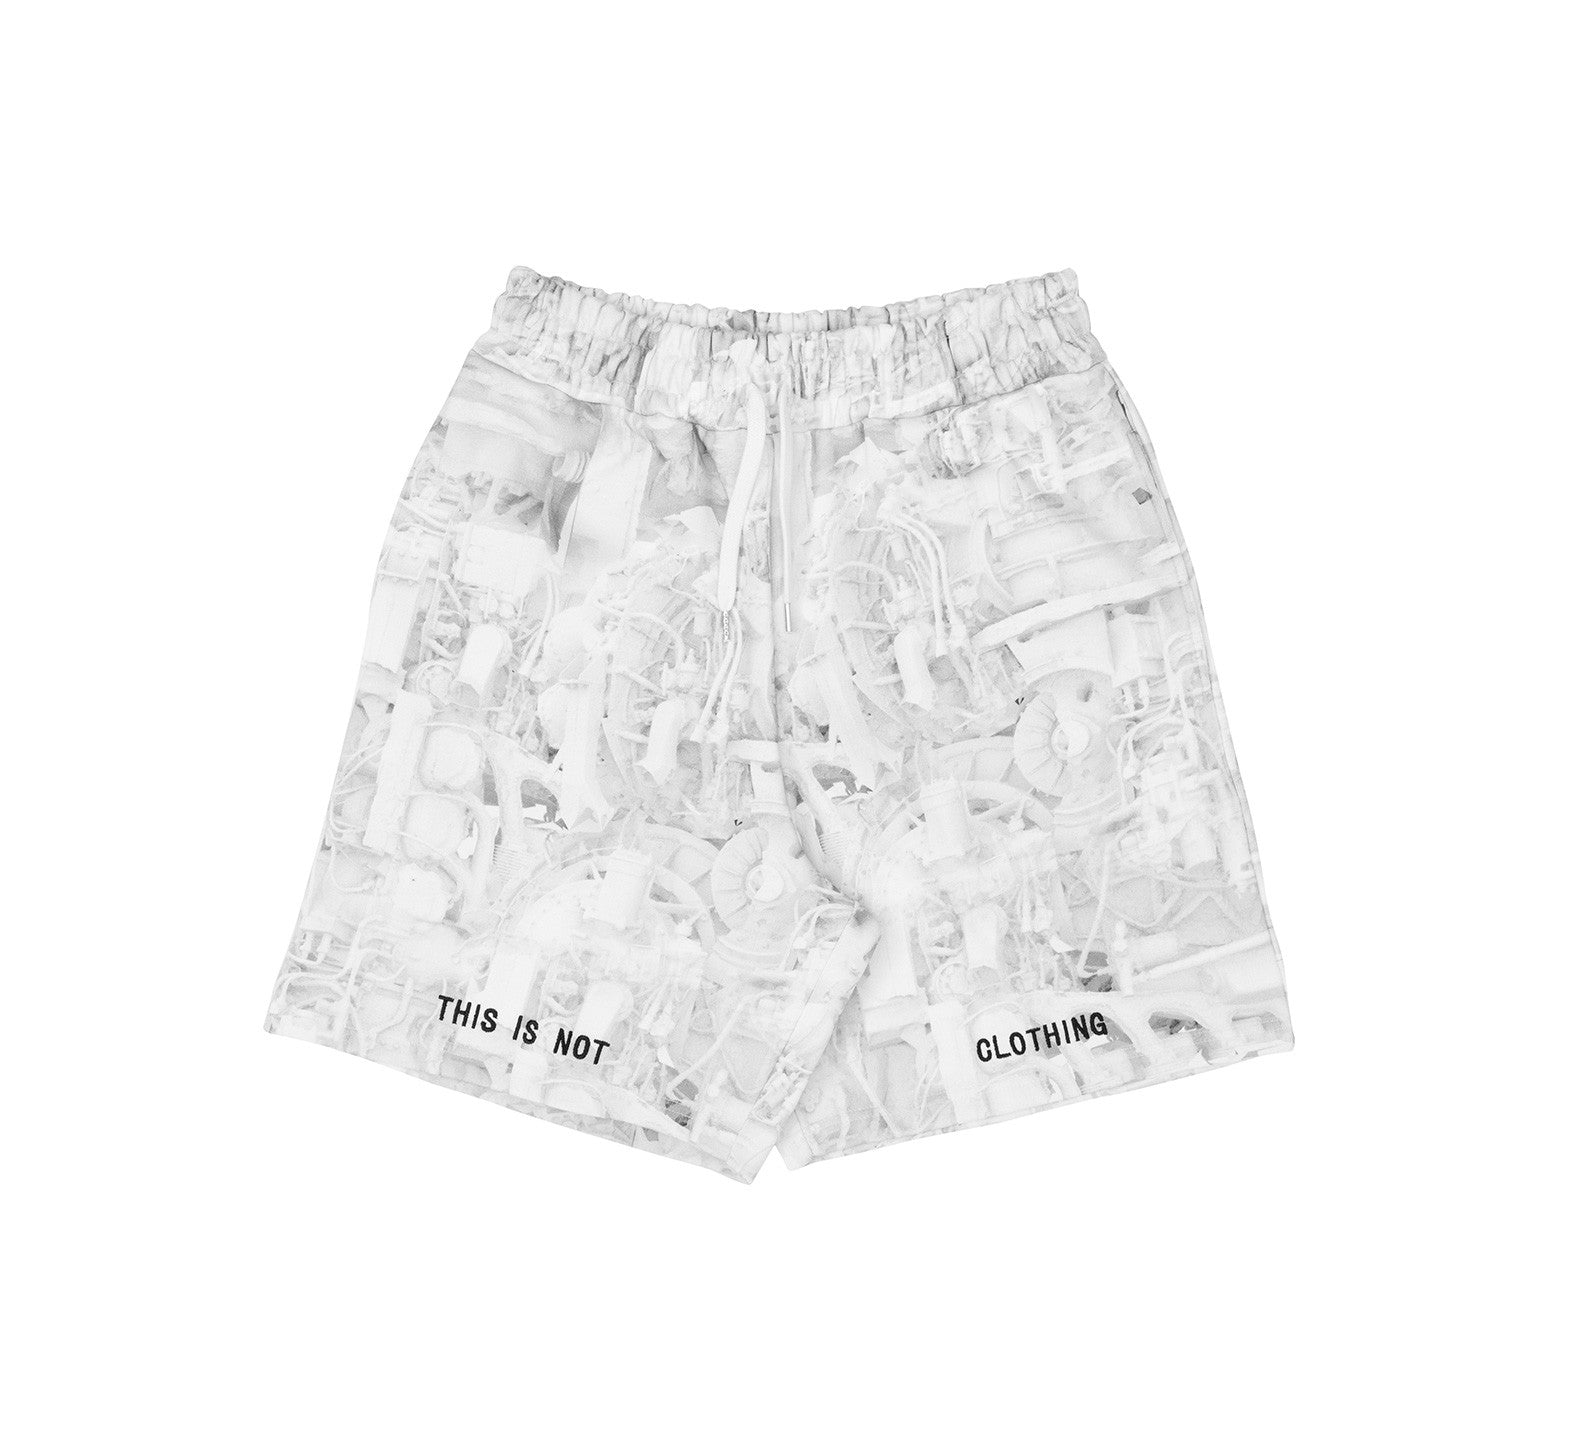 THE MACH1N3 SHORTS II